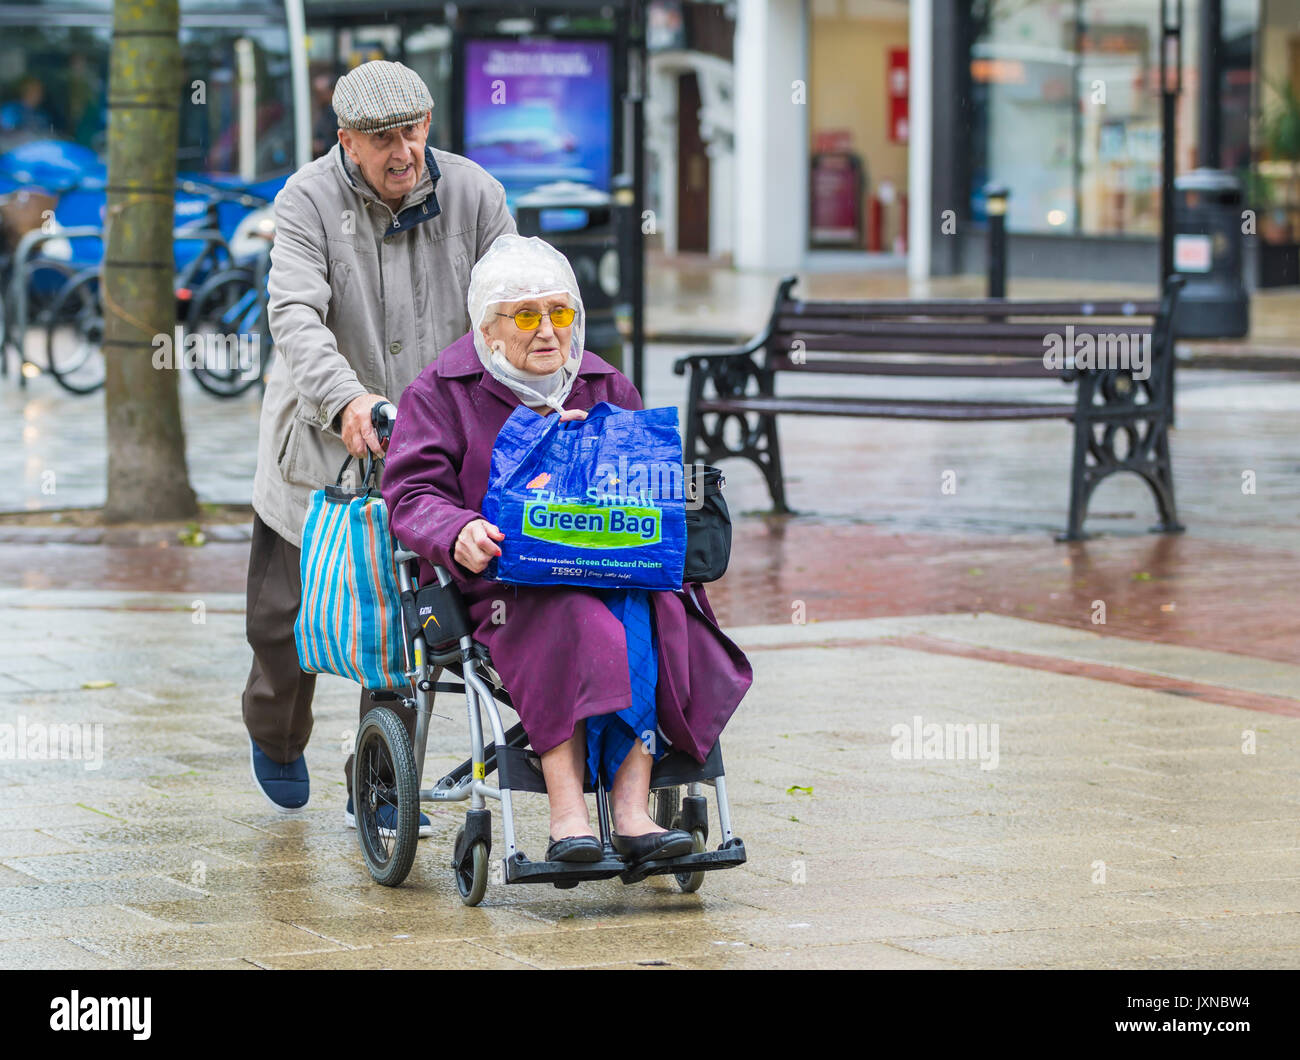 Elderly couple shopping in the rain, one pushing the other in a wheelchair, carrying a Tesco 'bag for life'. 'The small green bag'. Old disabled rain. - Stock Image